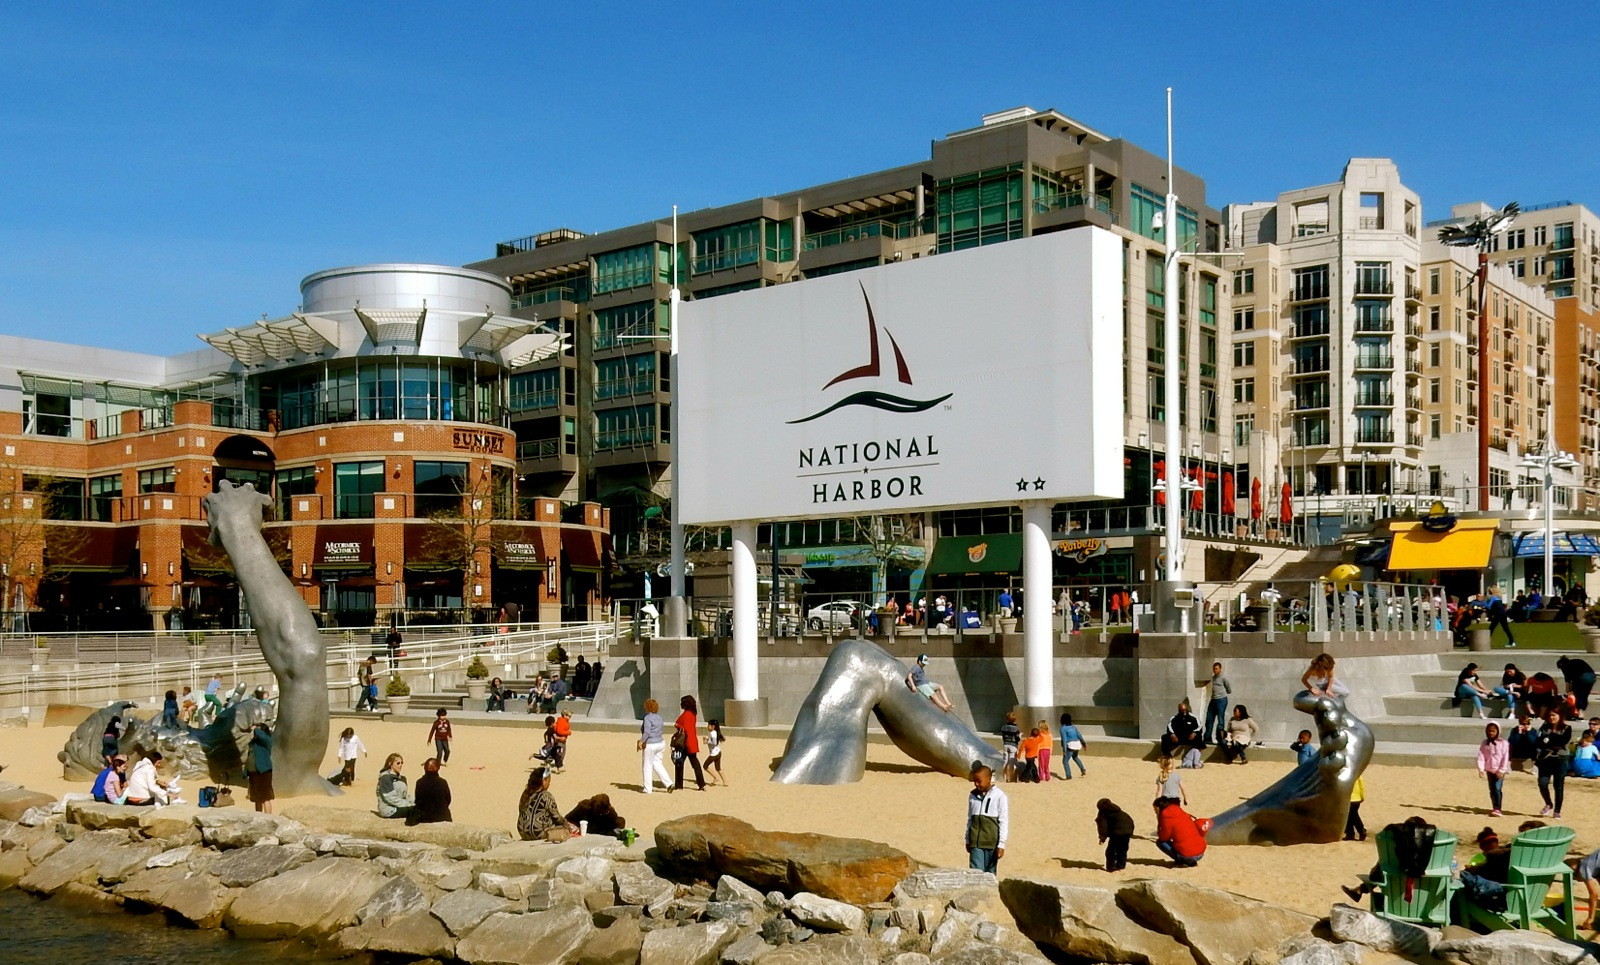 National harbor md a fun dc area town established 2008 for Awakening sculpture national harbor